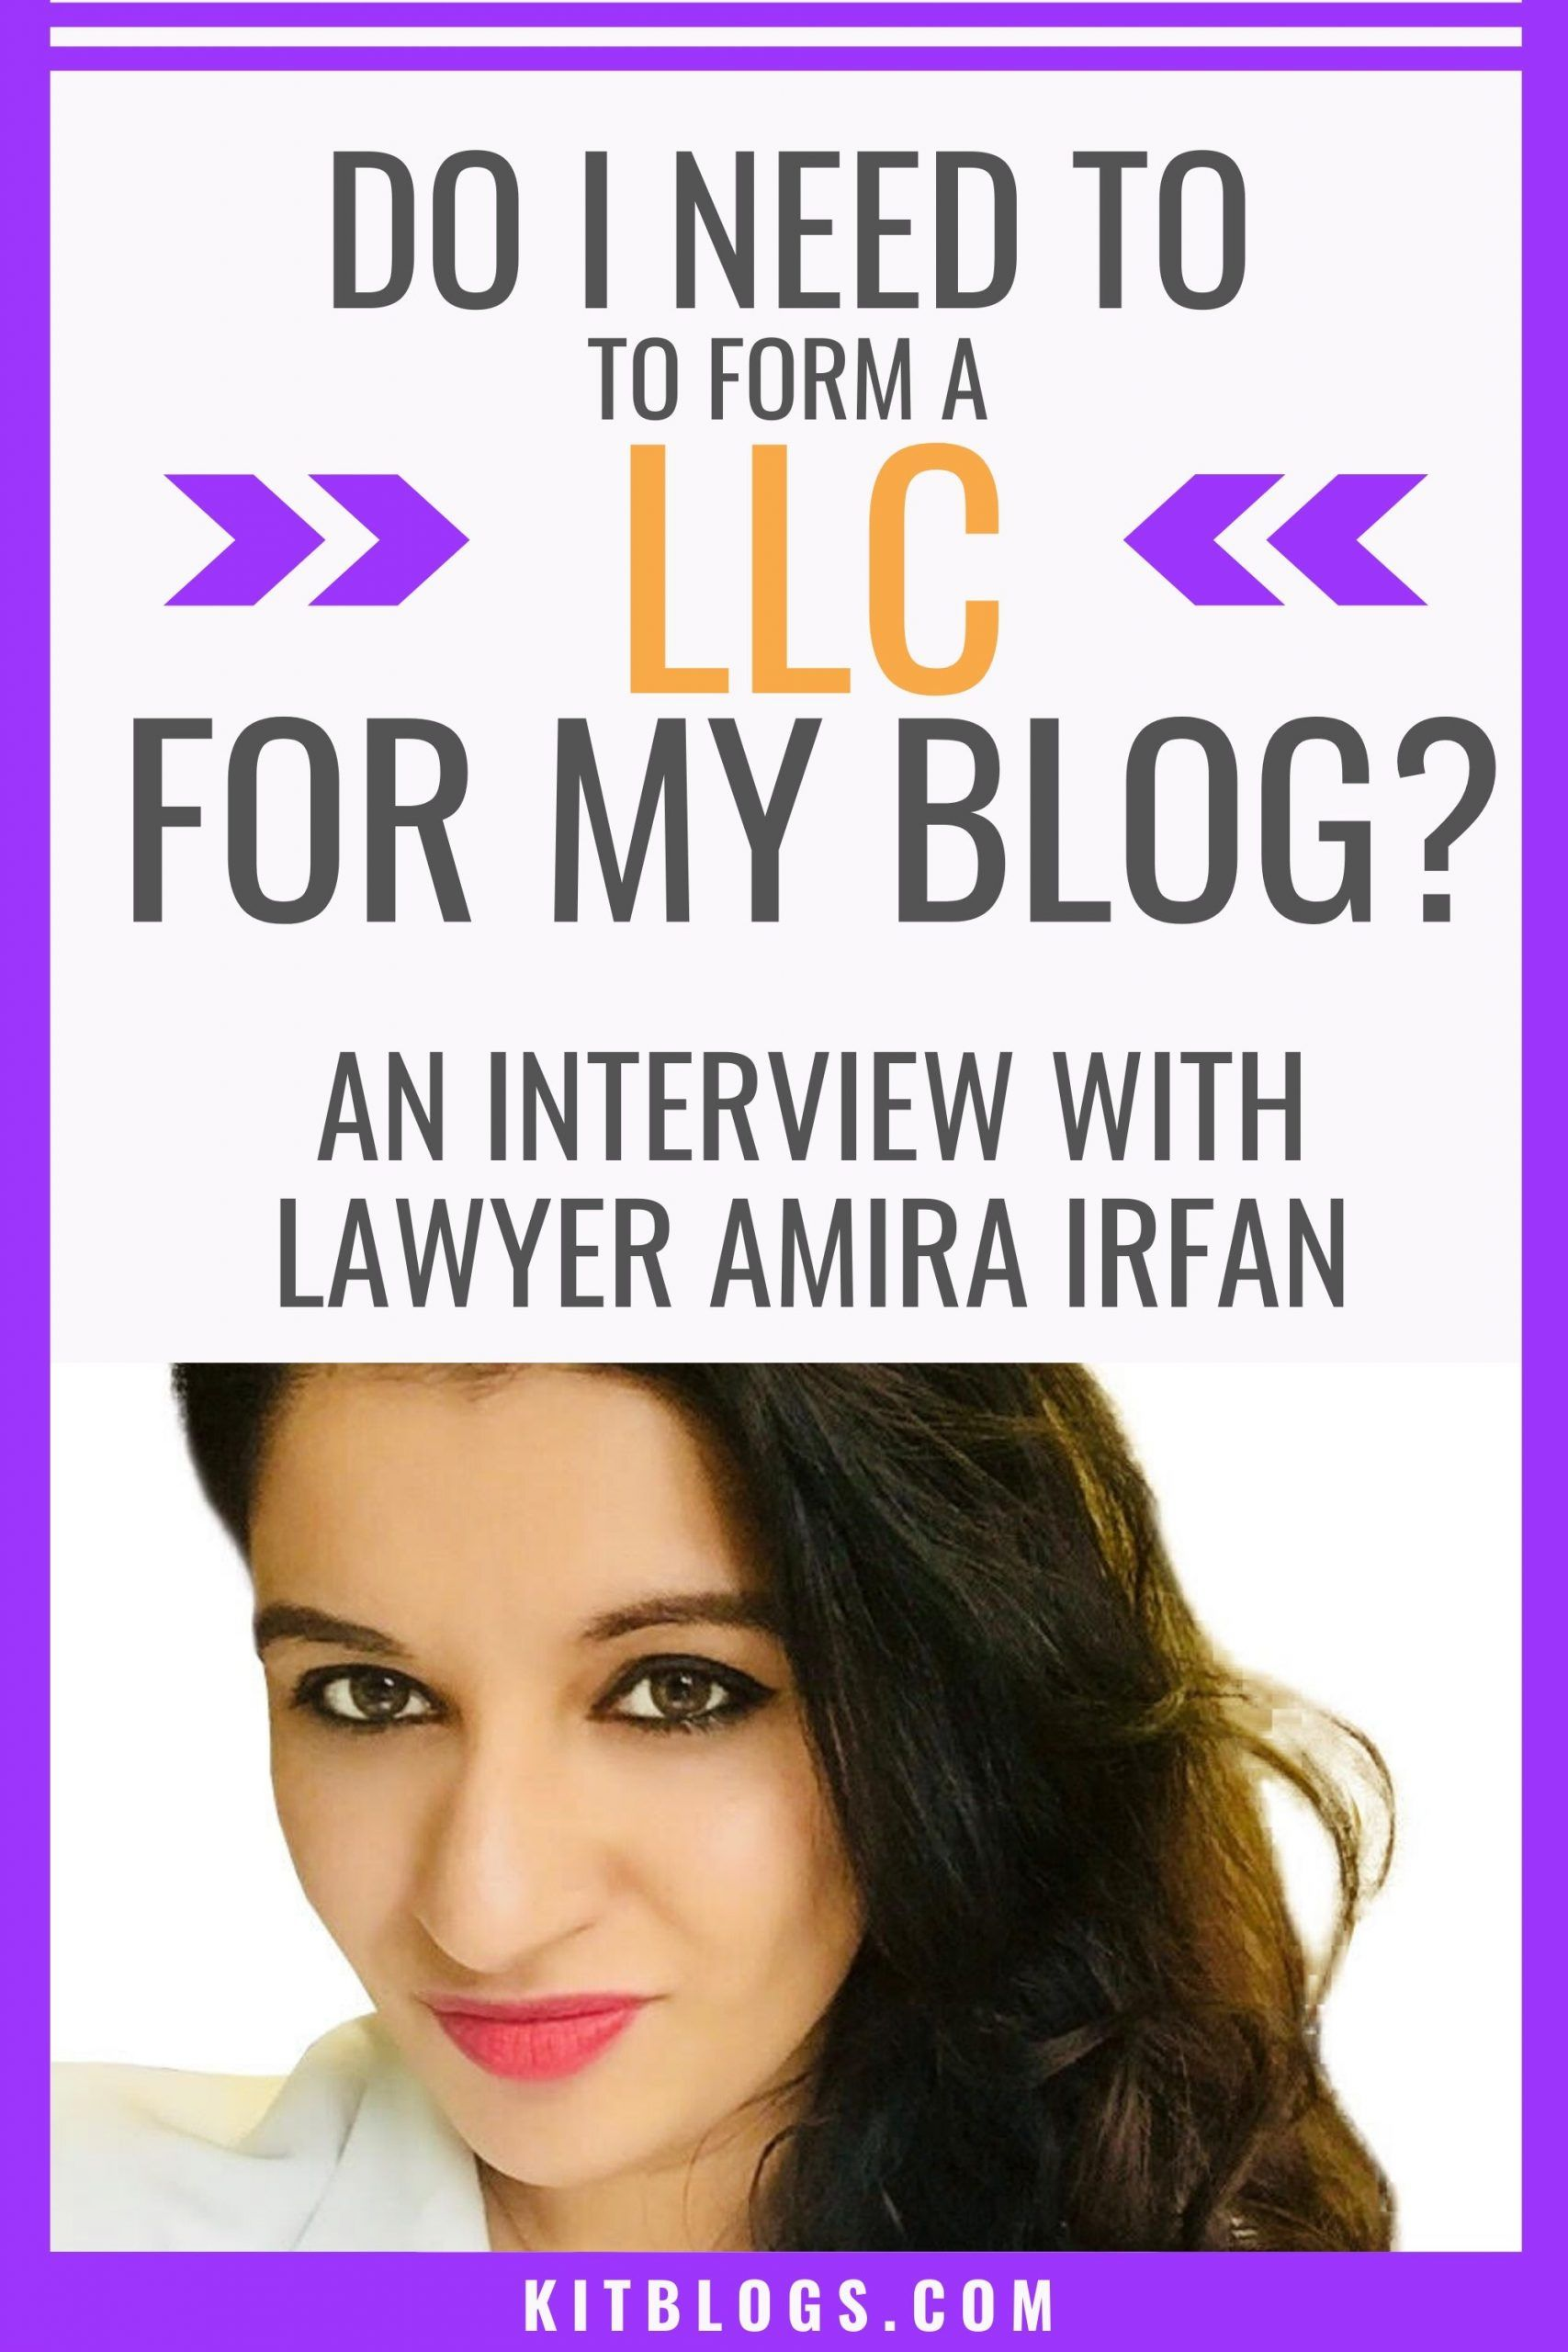 Do you need to form an LLC for your blog? Do you need a